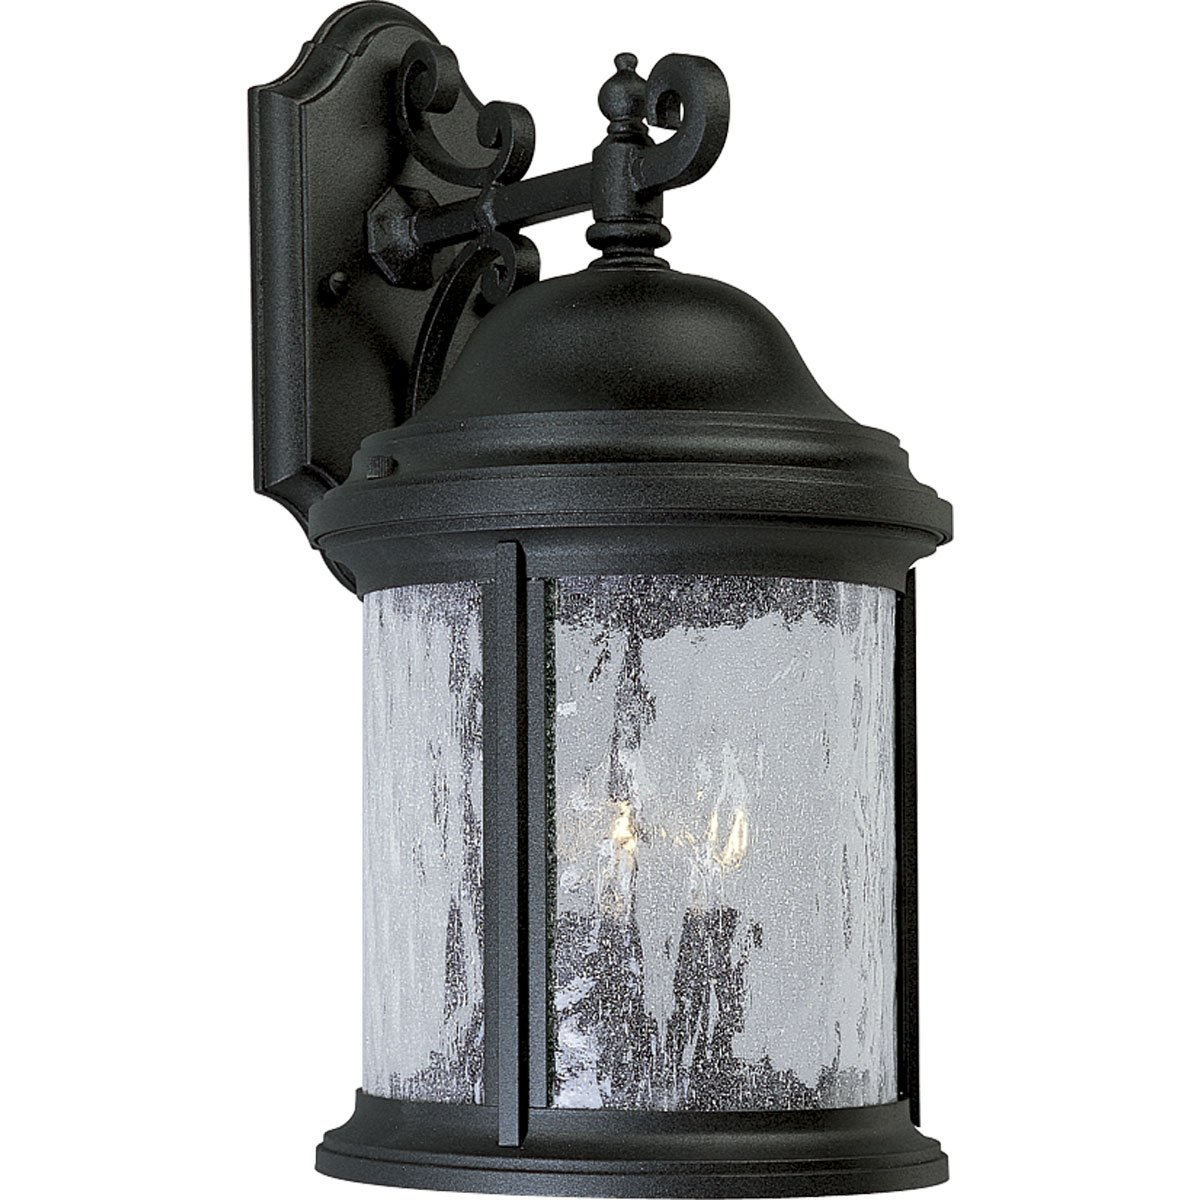 Progress Lighting P5650-31 3-Light Cast Aluminum Wall Lantern with Water-Seeded Glass, Textured Black